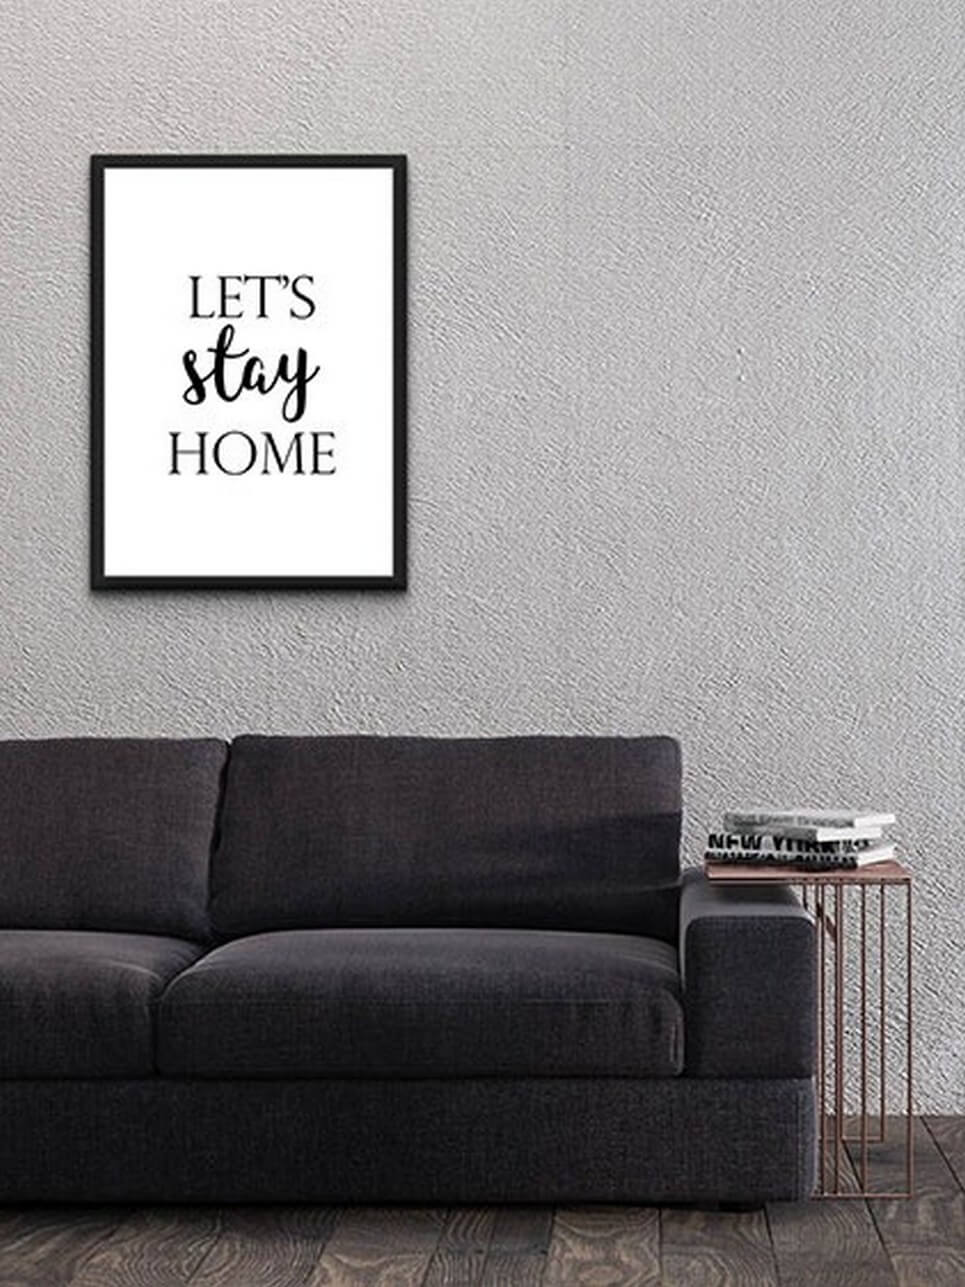 Home Wall Poster – Let's Stay Home